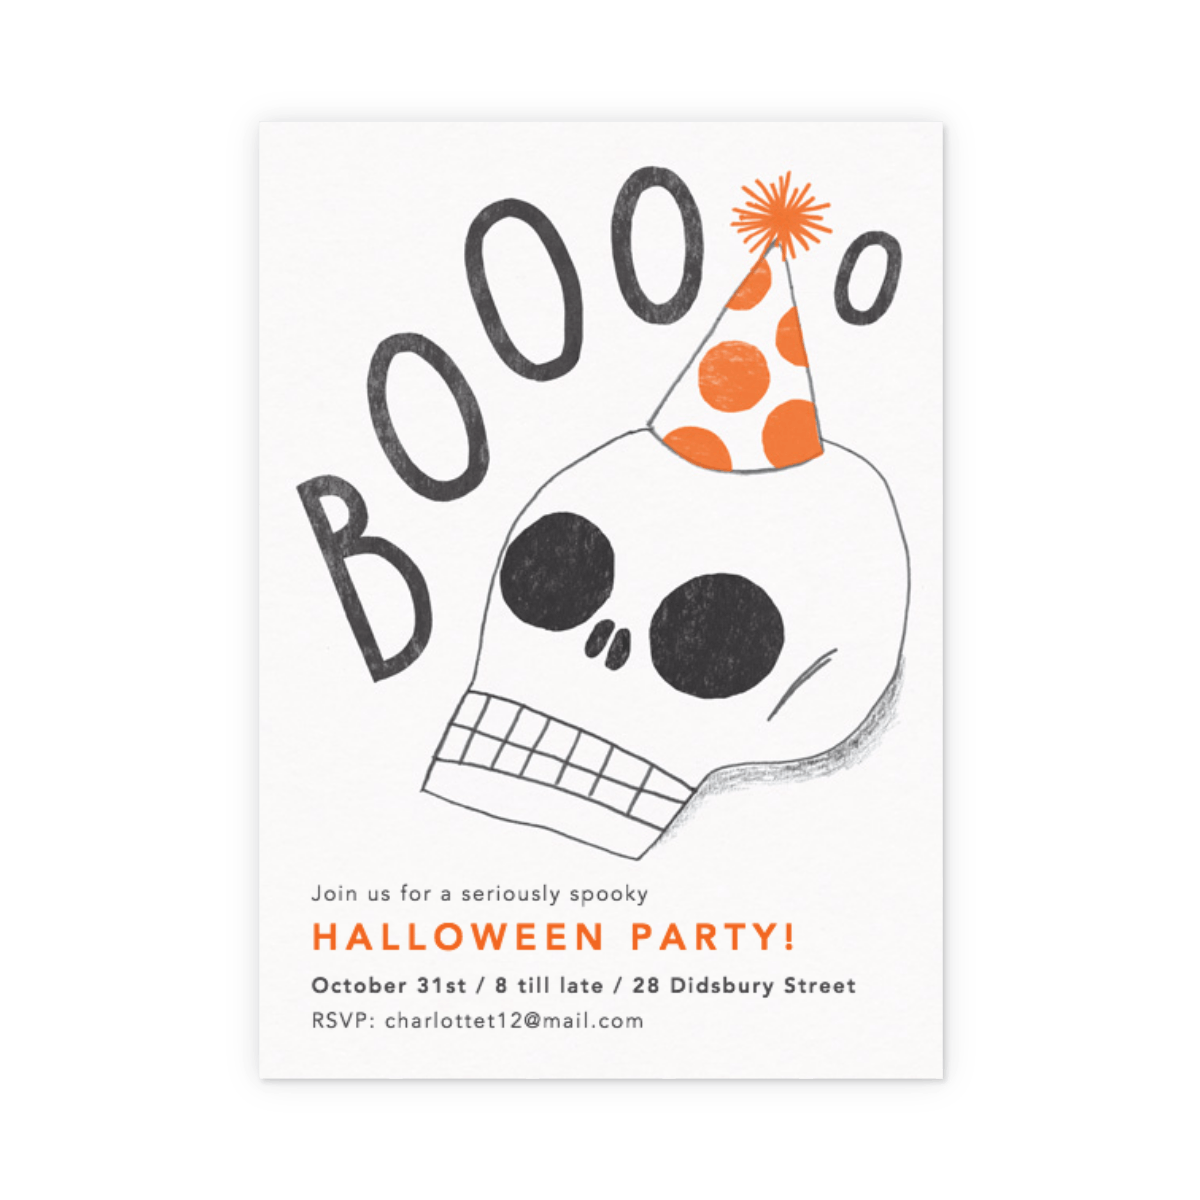 Https%3a%2f%2fwww.papier.com%2fproduct image%2f11042%2f4%2fhalloween skull 2809 front 1473954352.png?ixlib=rb 1.1